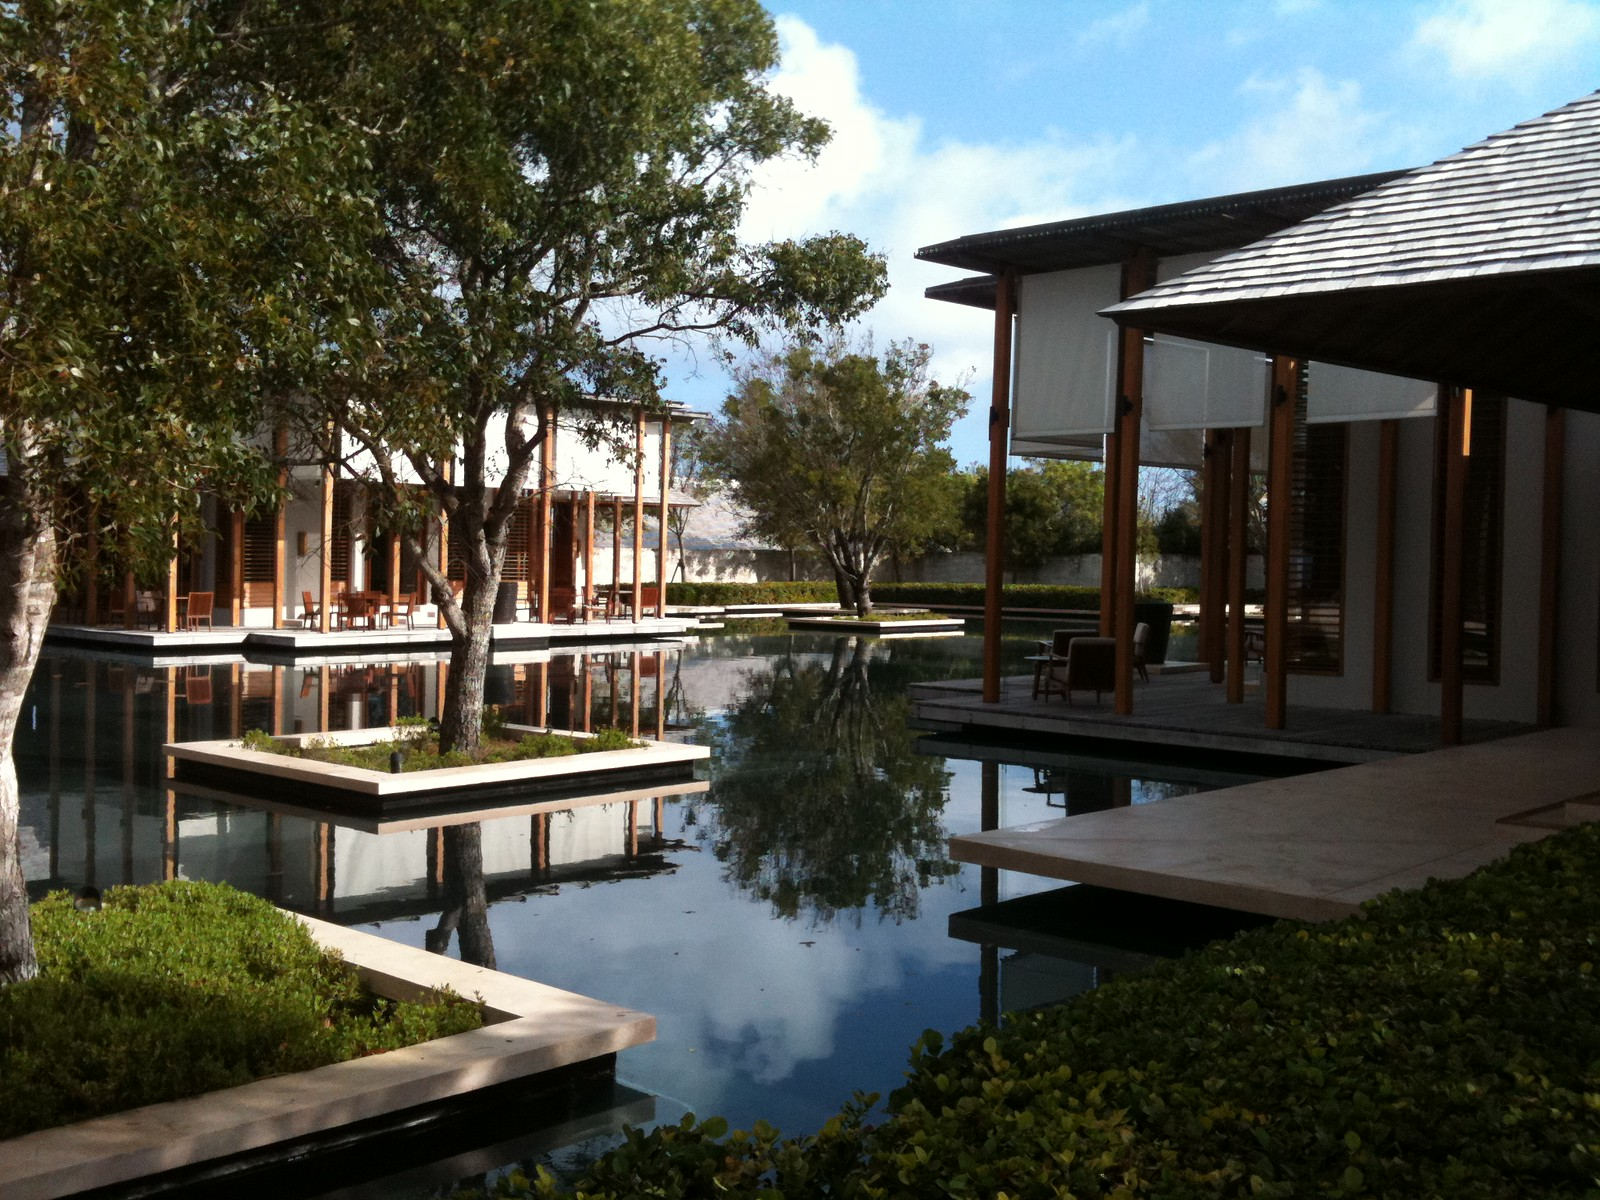 Amanyara in the Turks and Caicos